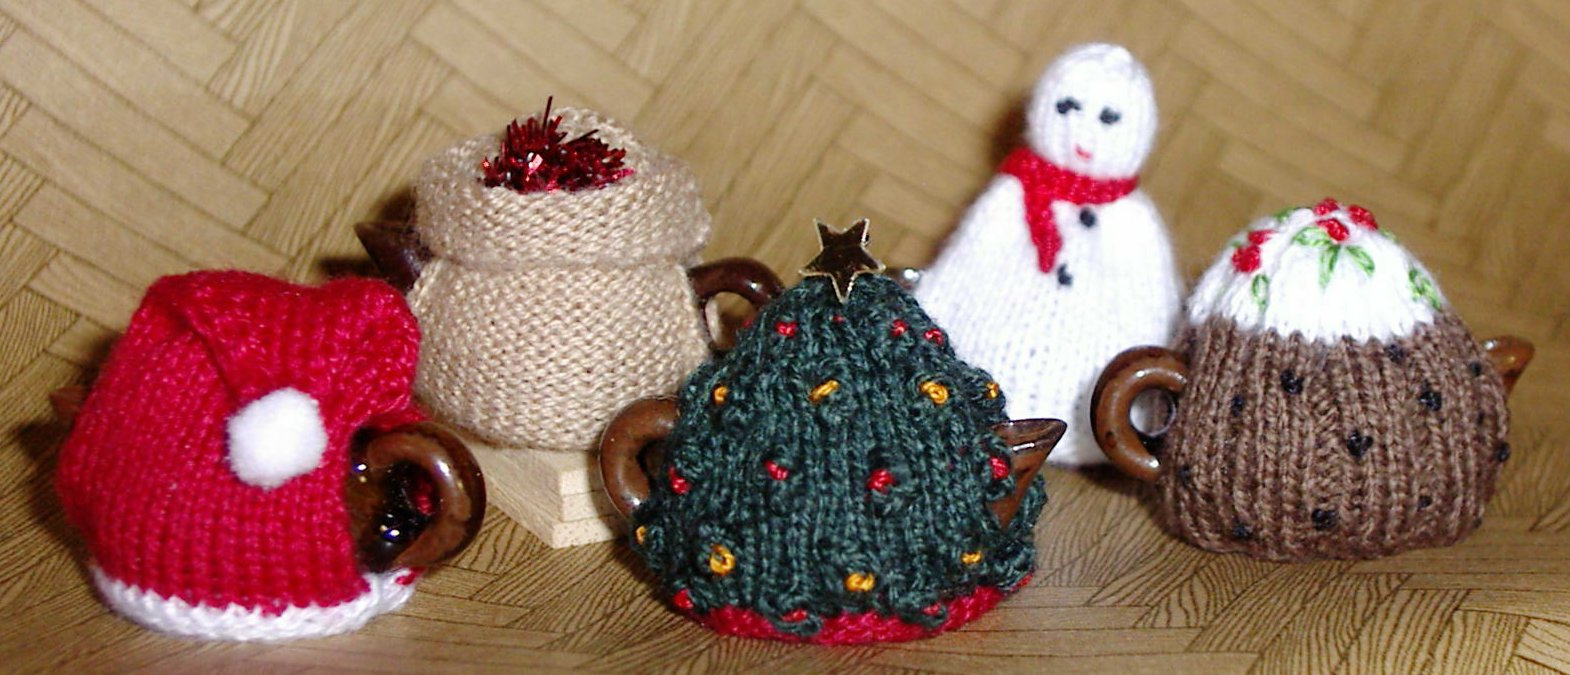 Patterns For Knitted Tea Cosies Knitting Patterns For Tea Cosy Free Knitting Patterns